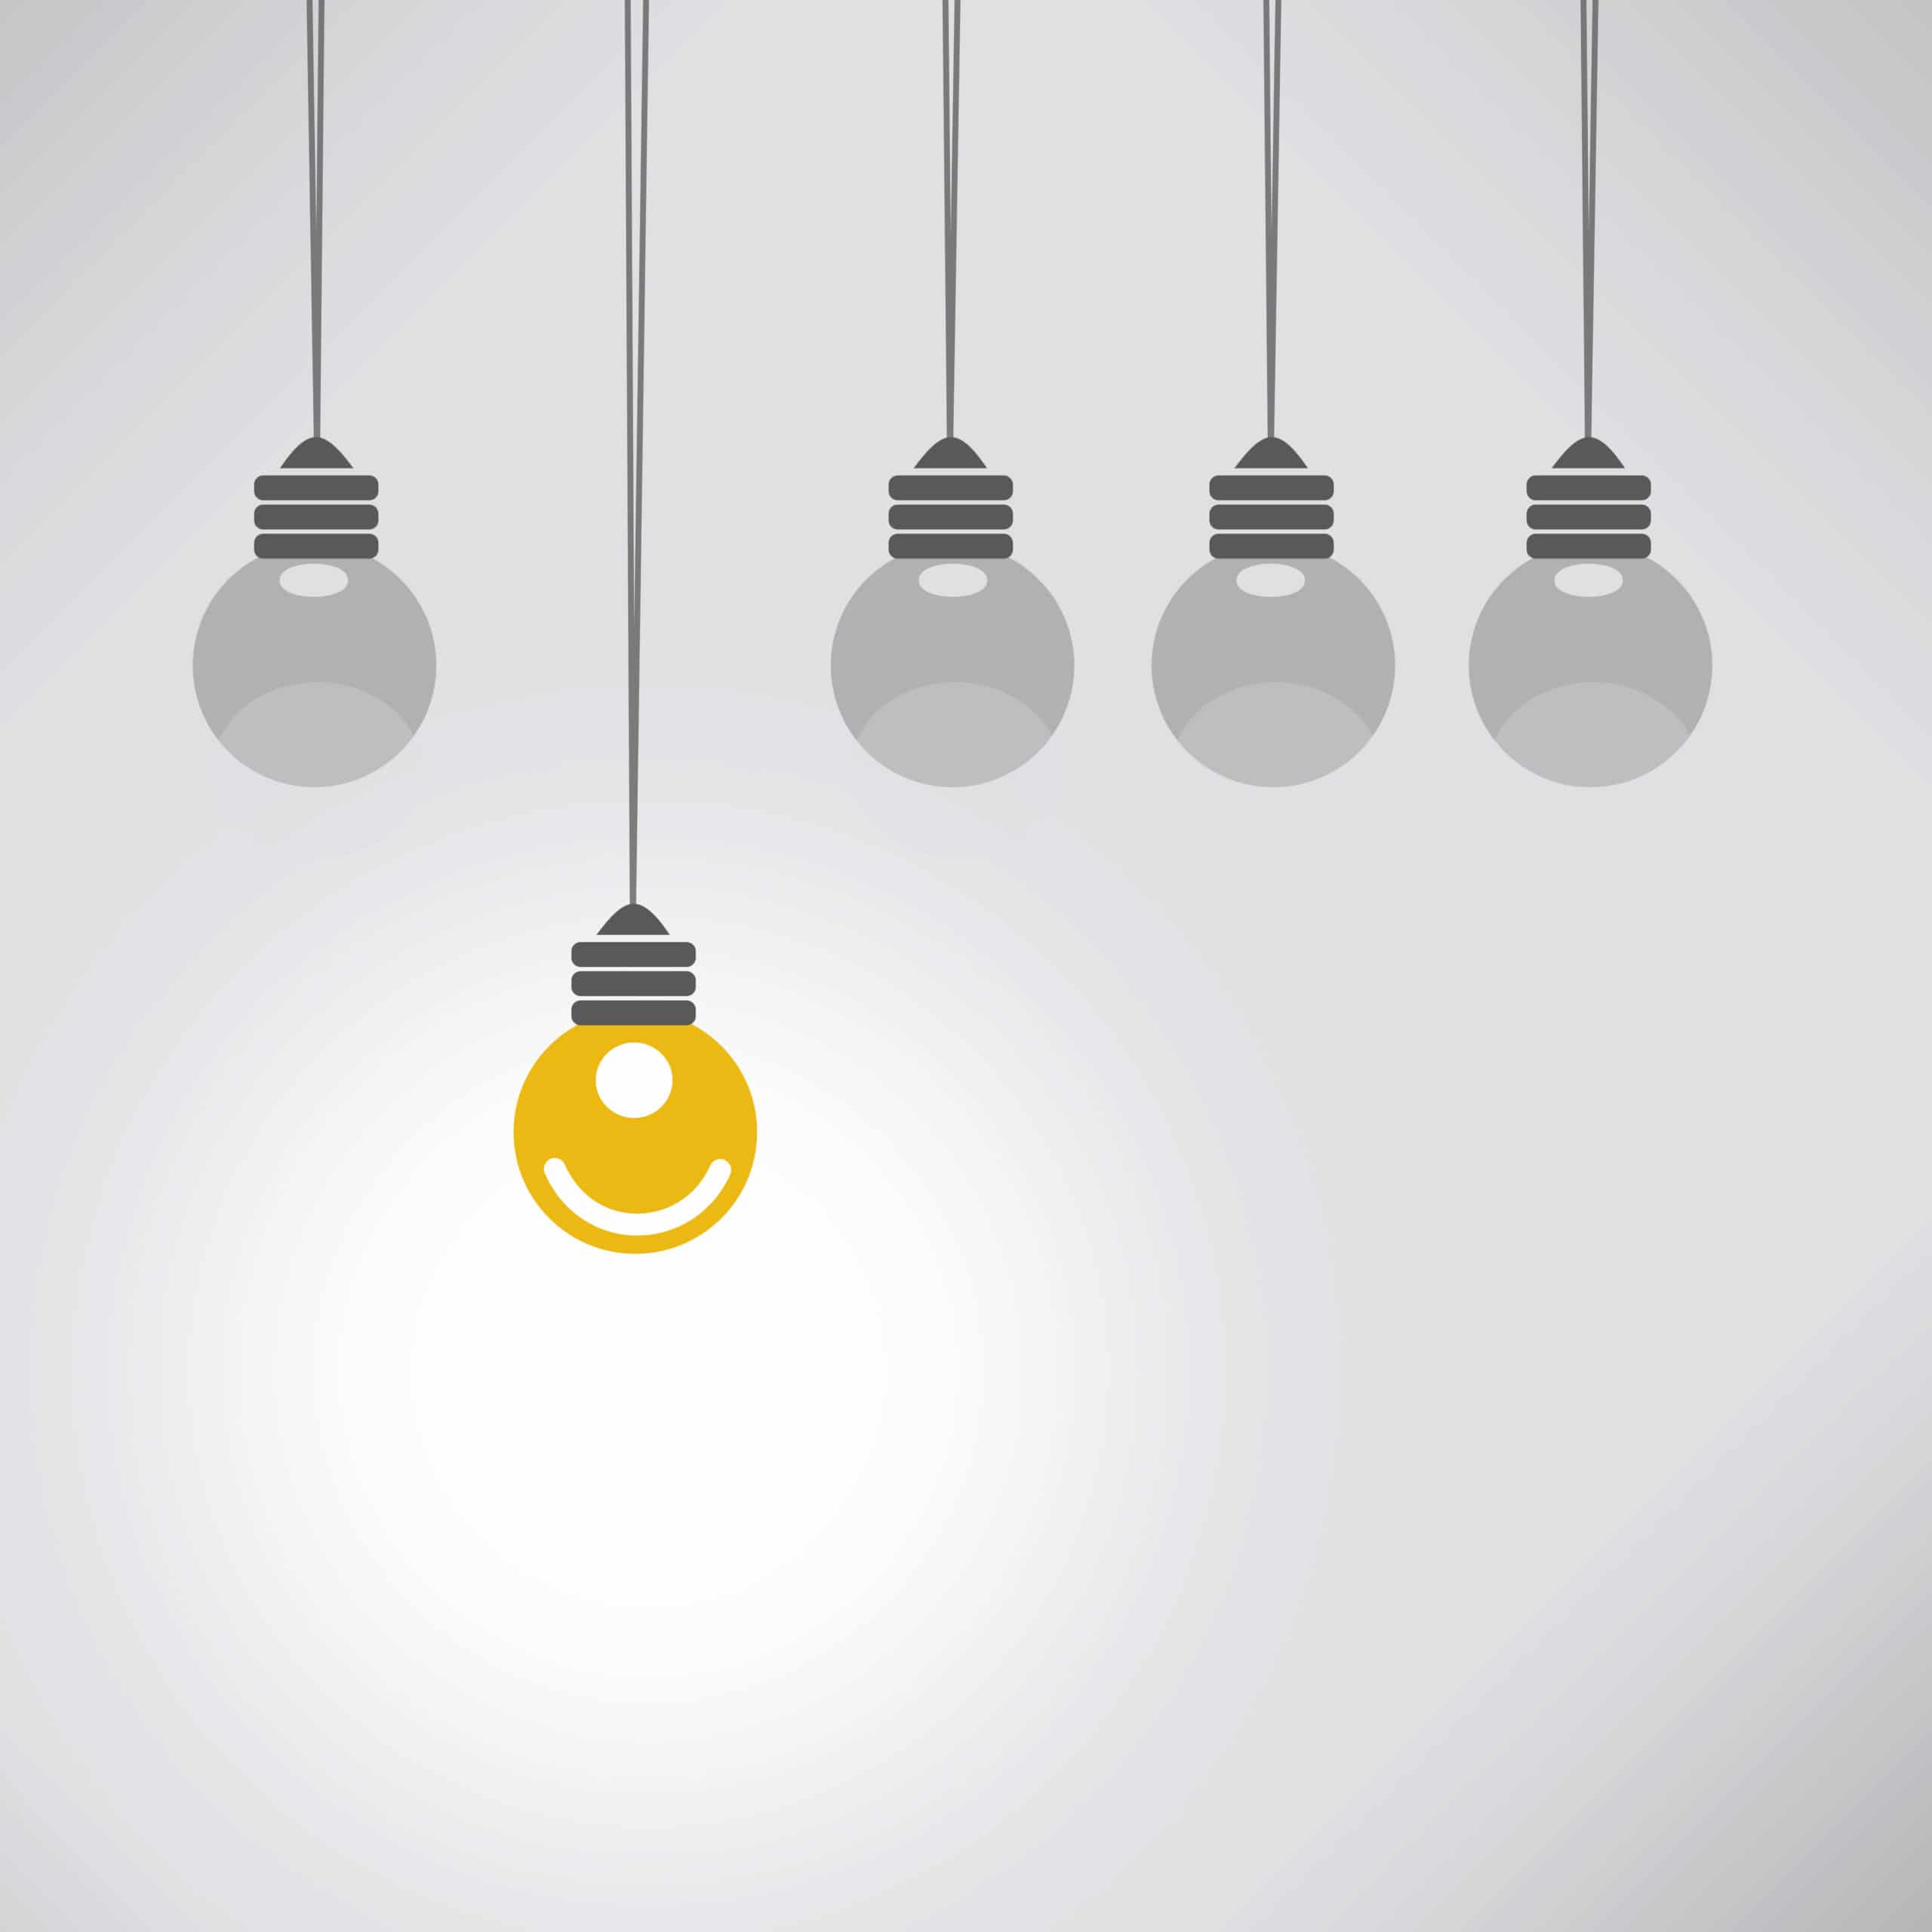 PRACTICAL TIPS FOR BECOMING A THOUGHT LEADER post thumbnail